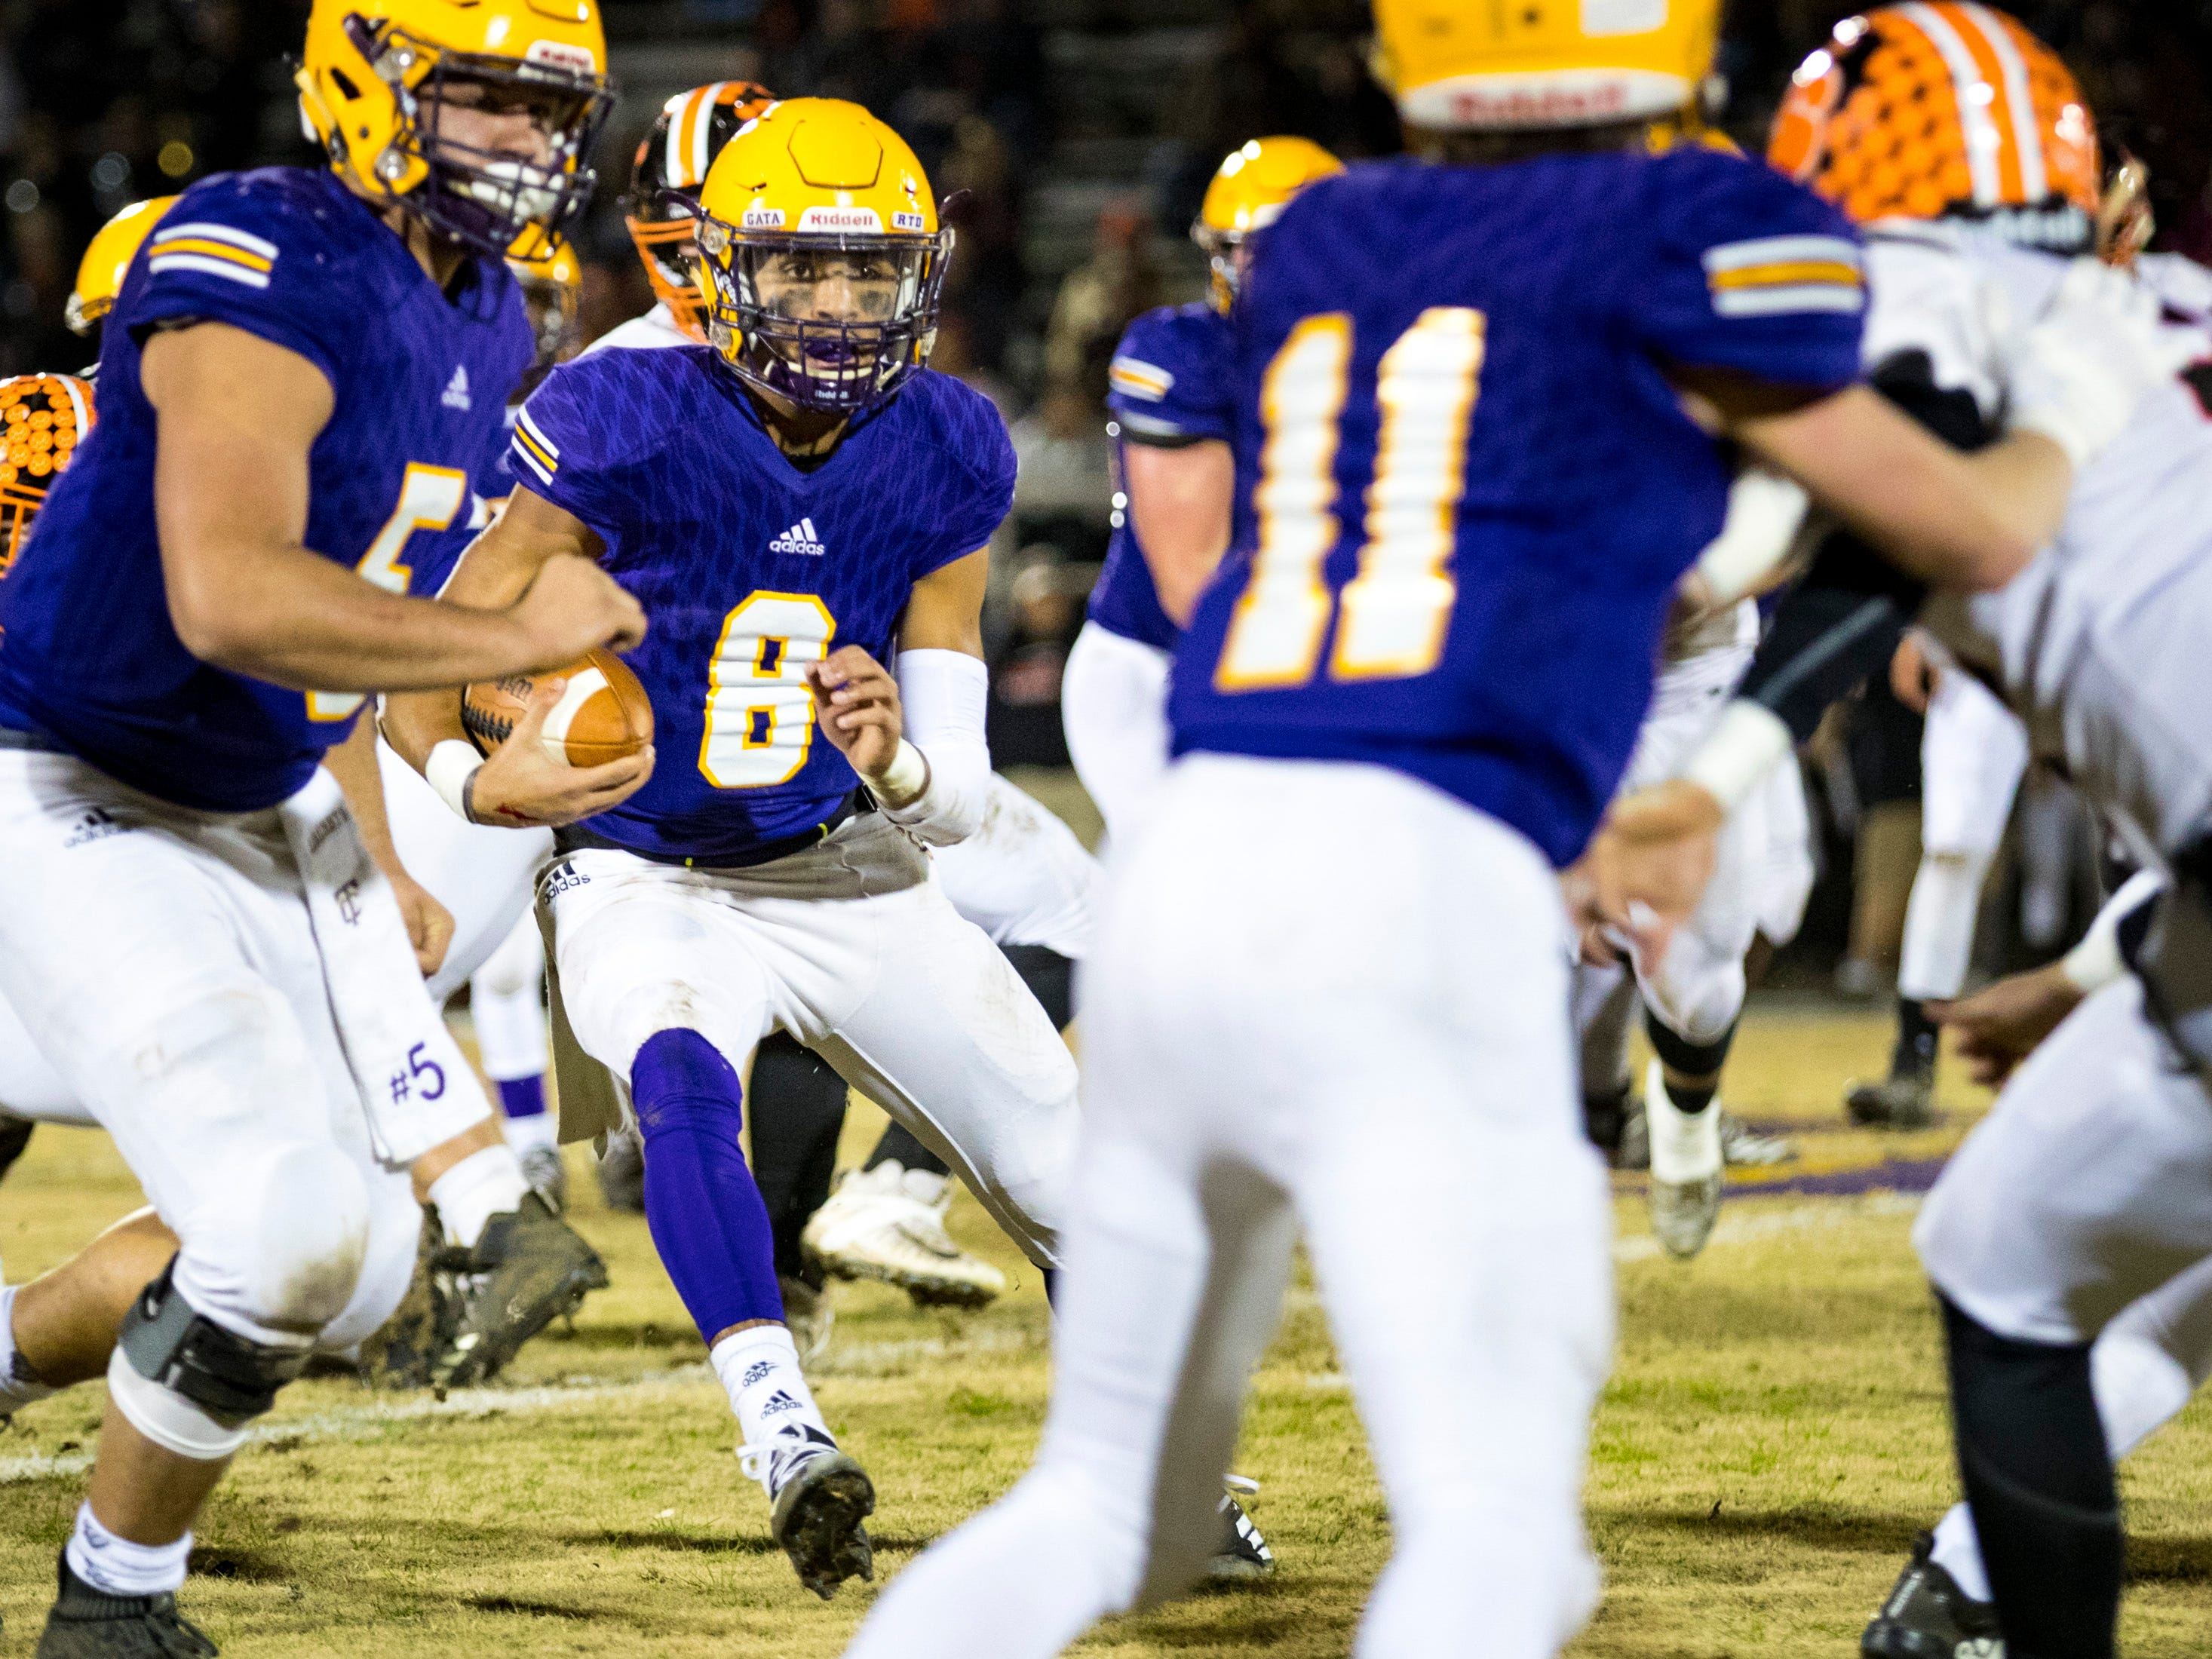 Trousdale County's Keyvont Baines (8) runs through traffic during Trousdale County's game against Meigs County at Jim Satterfield Stadium in Hartsville on Friday, Nov. 23, 2018.